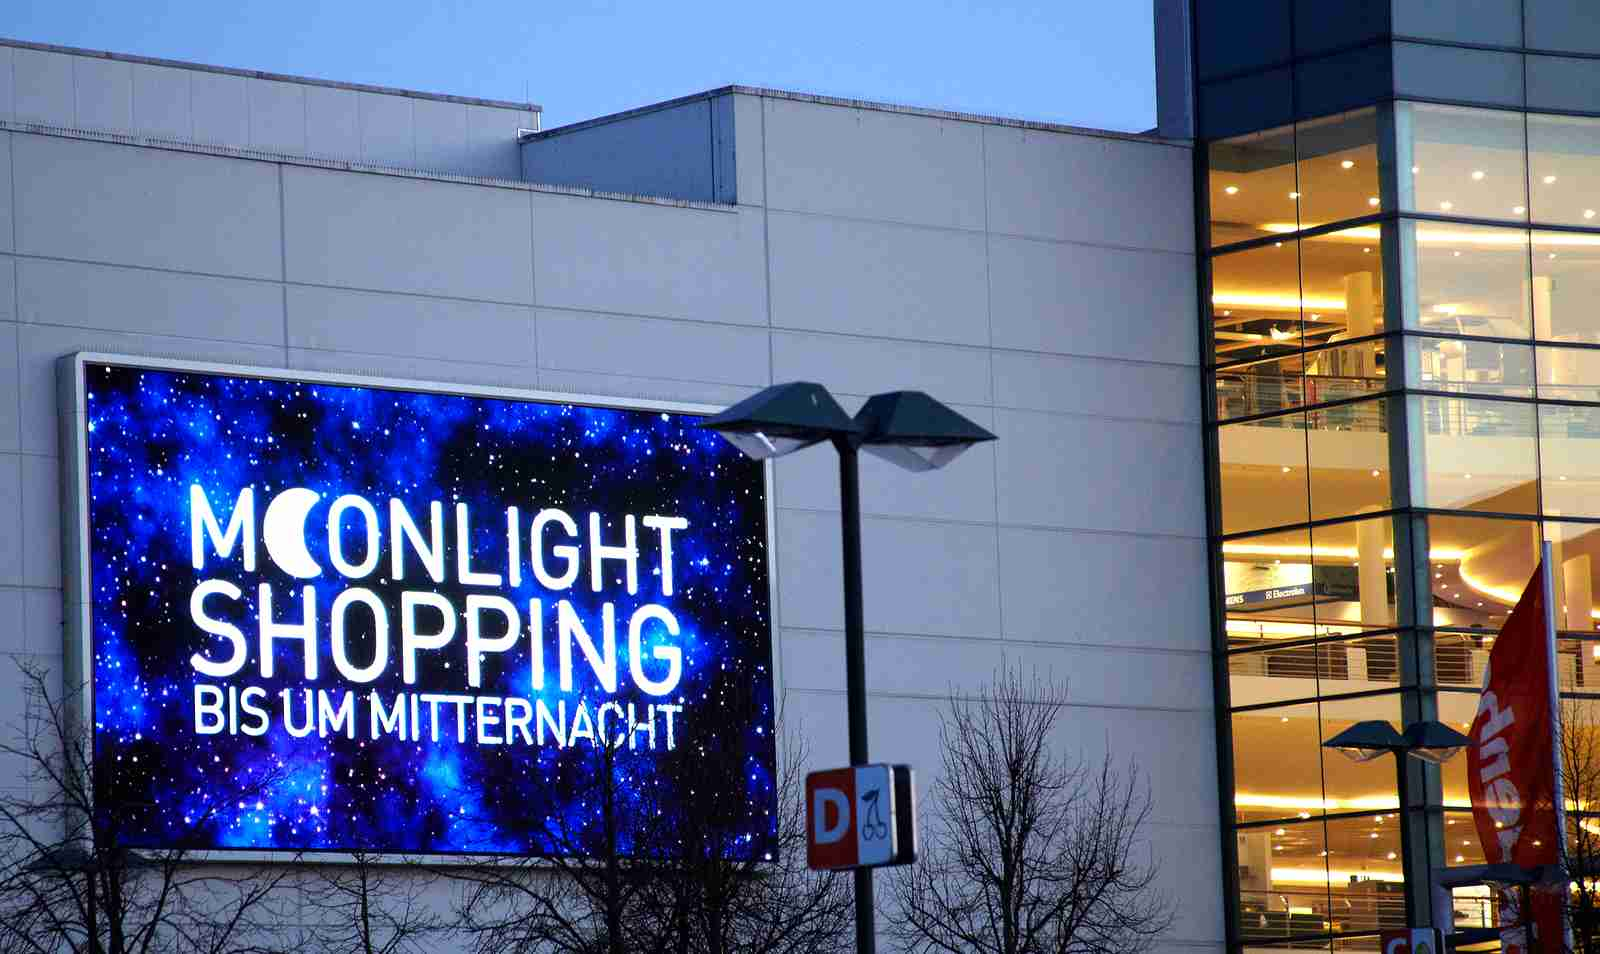 Stressless Sessel Dodenhof Dodenhof Brasilianisches Moonlight Shopping Ganz Hamburg